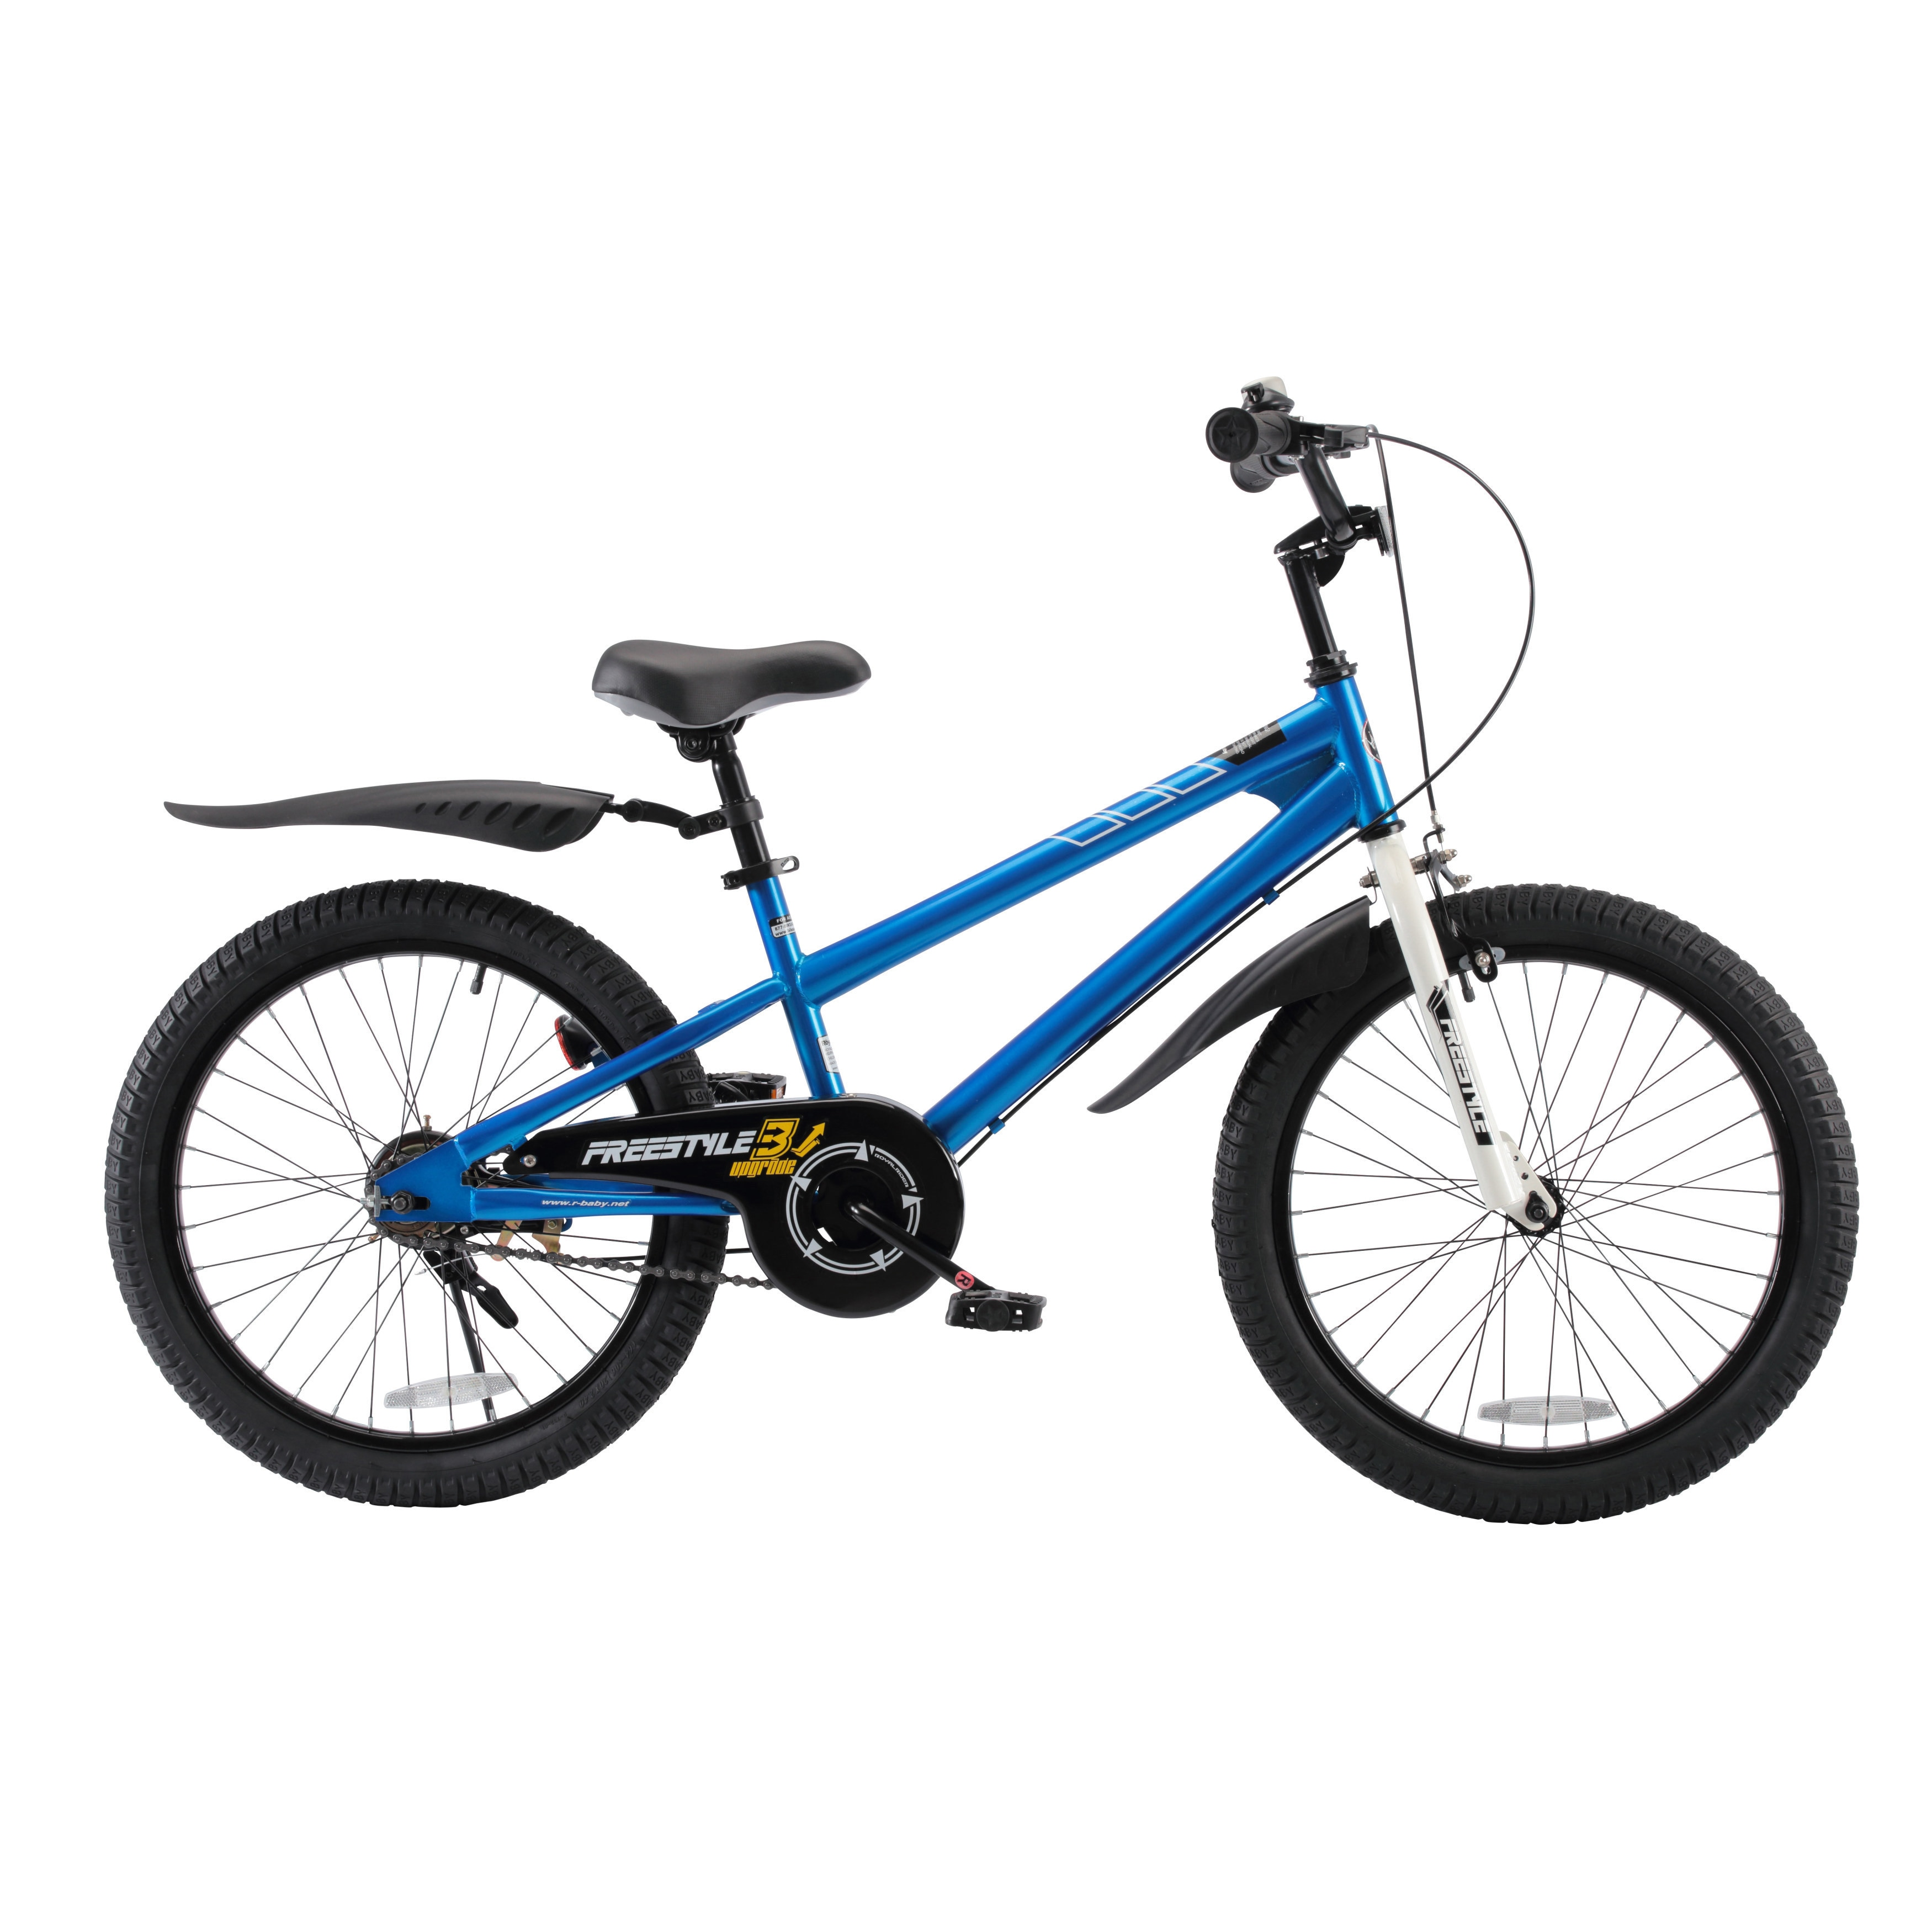 Shop RoyalBaby BMX Freestyle Kids Bike, Boy's Bikes and Girl's Bikes ... royalbaby bmx freestyle kid's bike 18